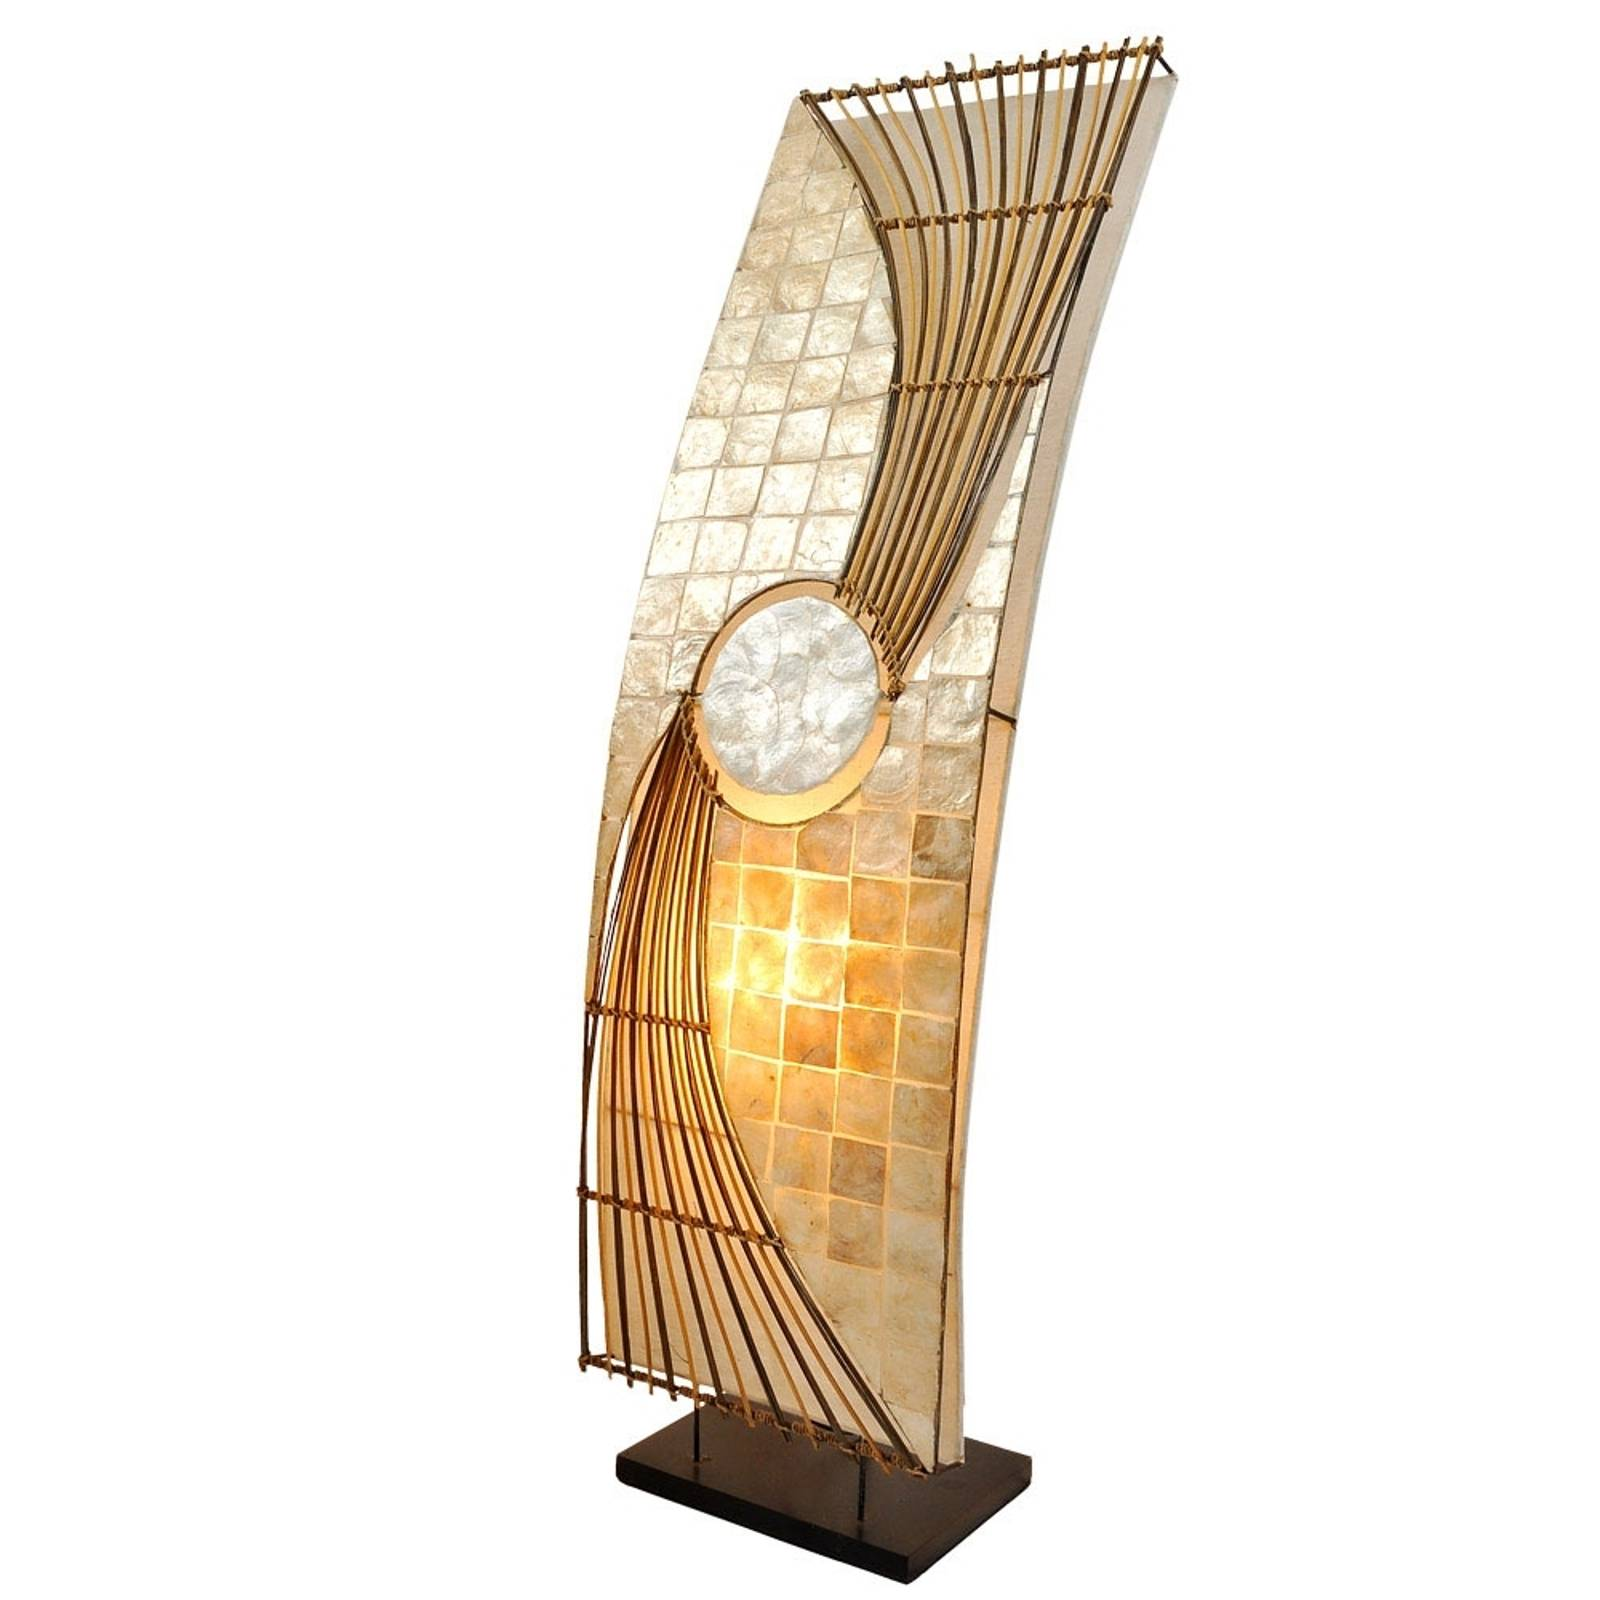 Stylish QUENTO floor lamp, 90 cm from Woru